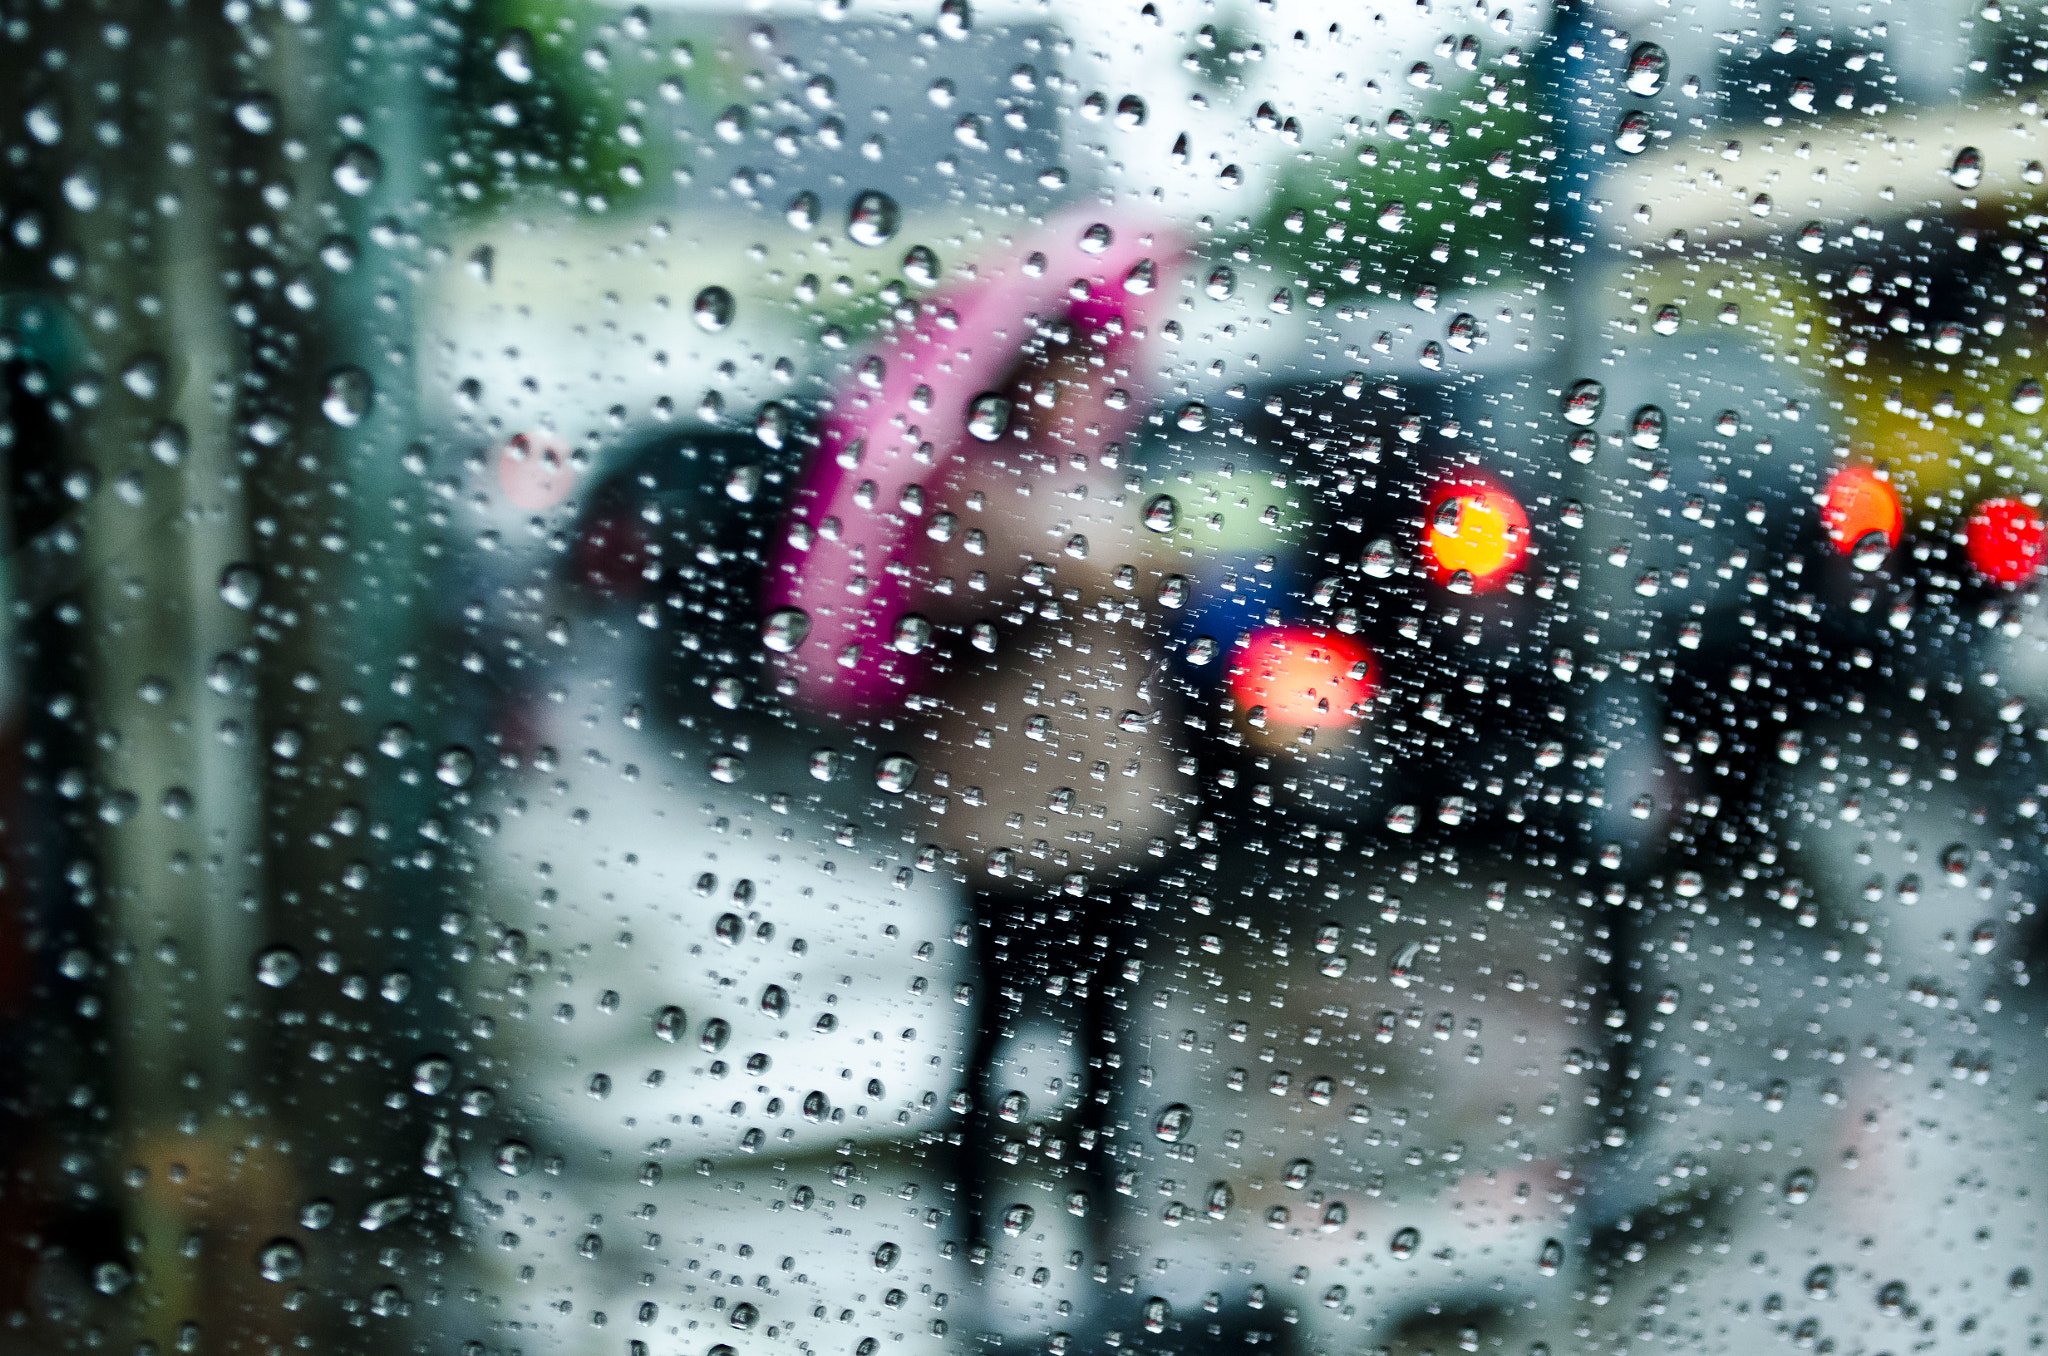 Photograph Rain drops by Alexander Brown on 500px